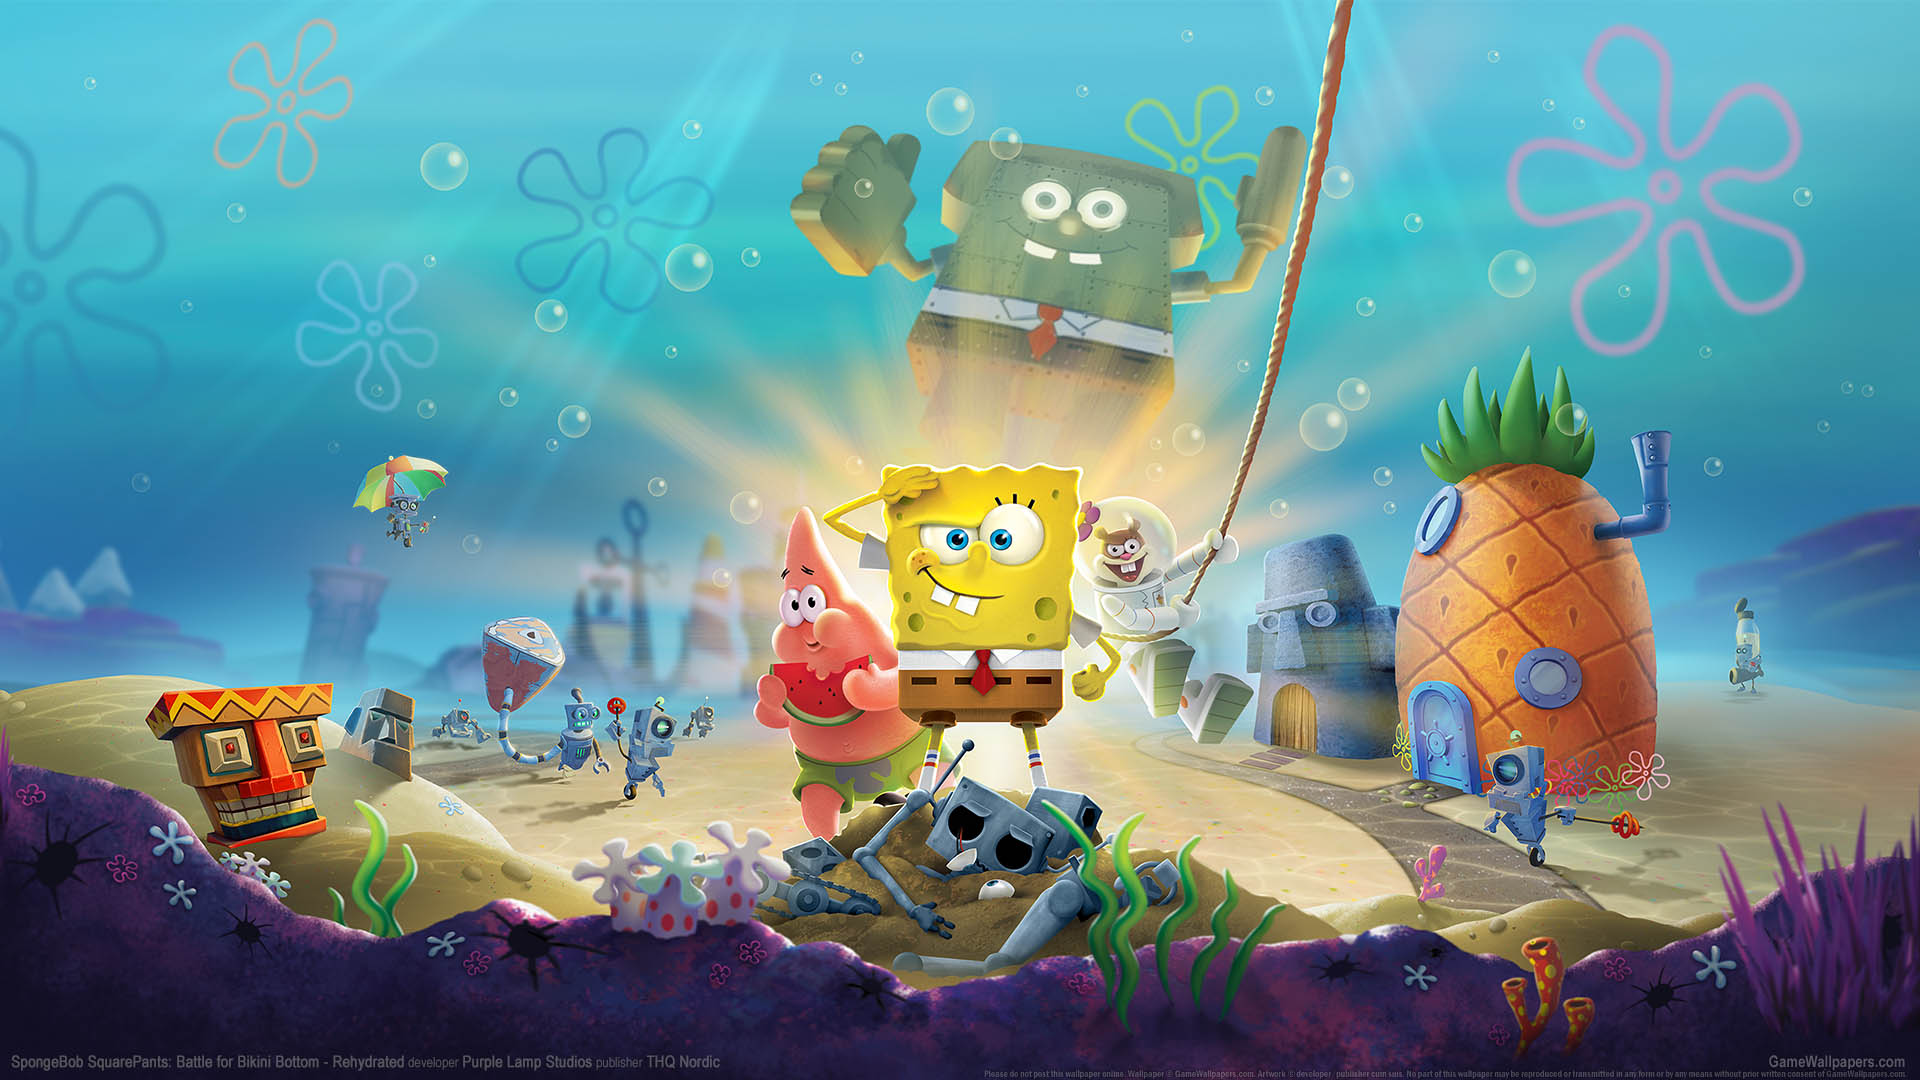 SpongeBob SquarePants: Battle for Bikini Bottom - Rehydrated fondo de escritorio 01 1920x1080